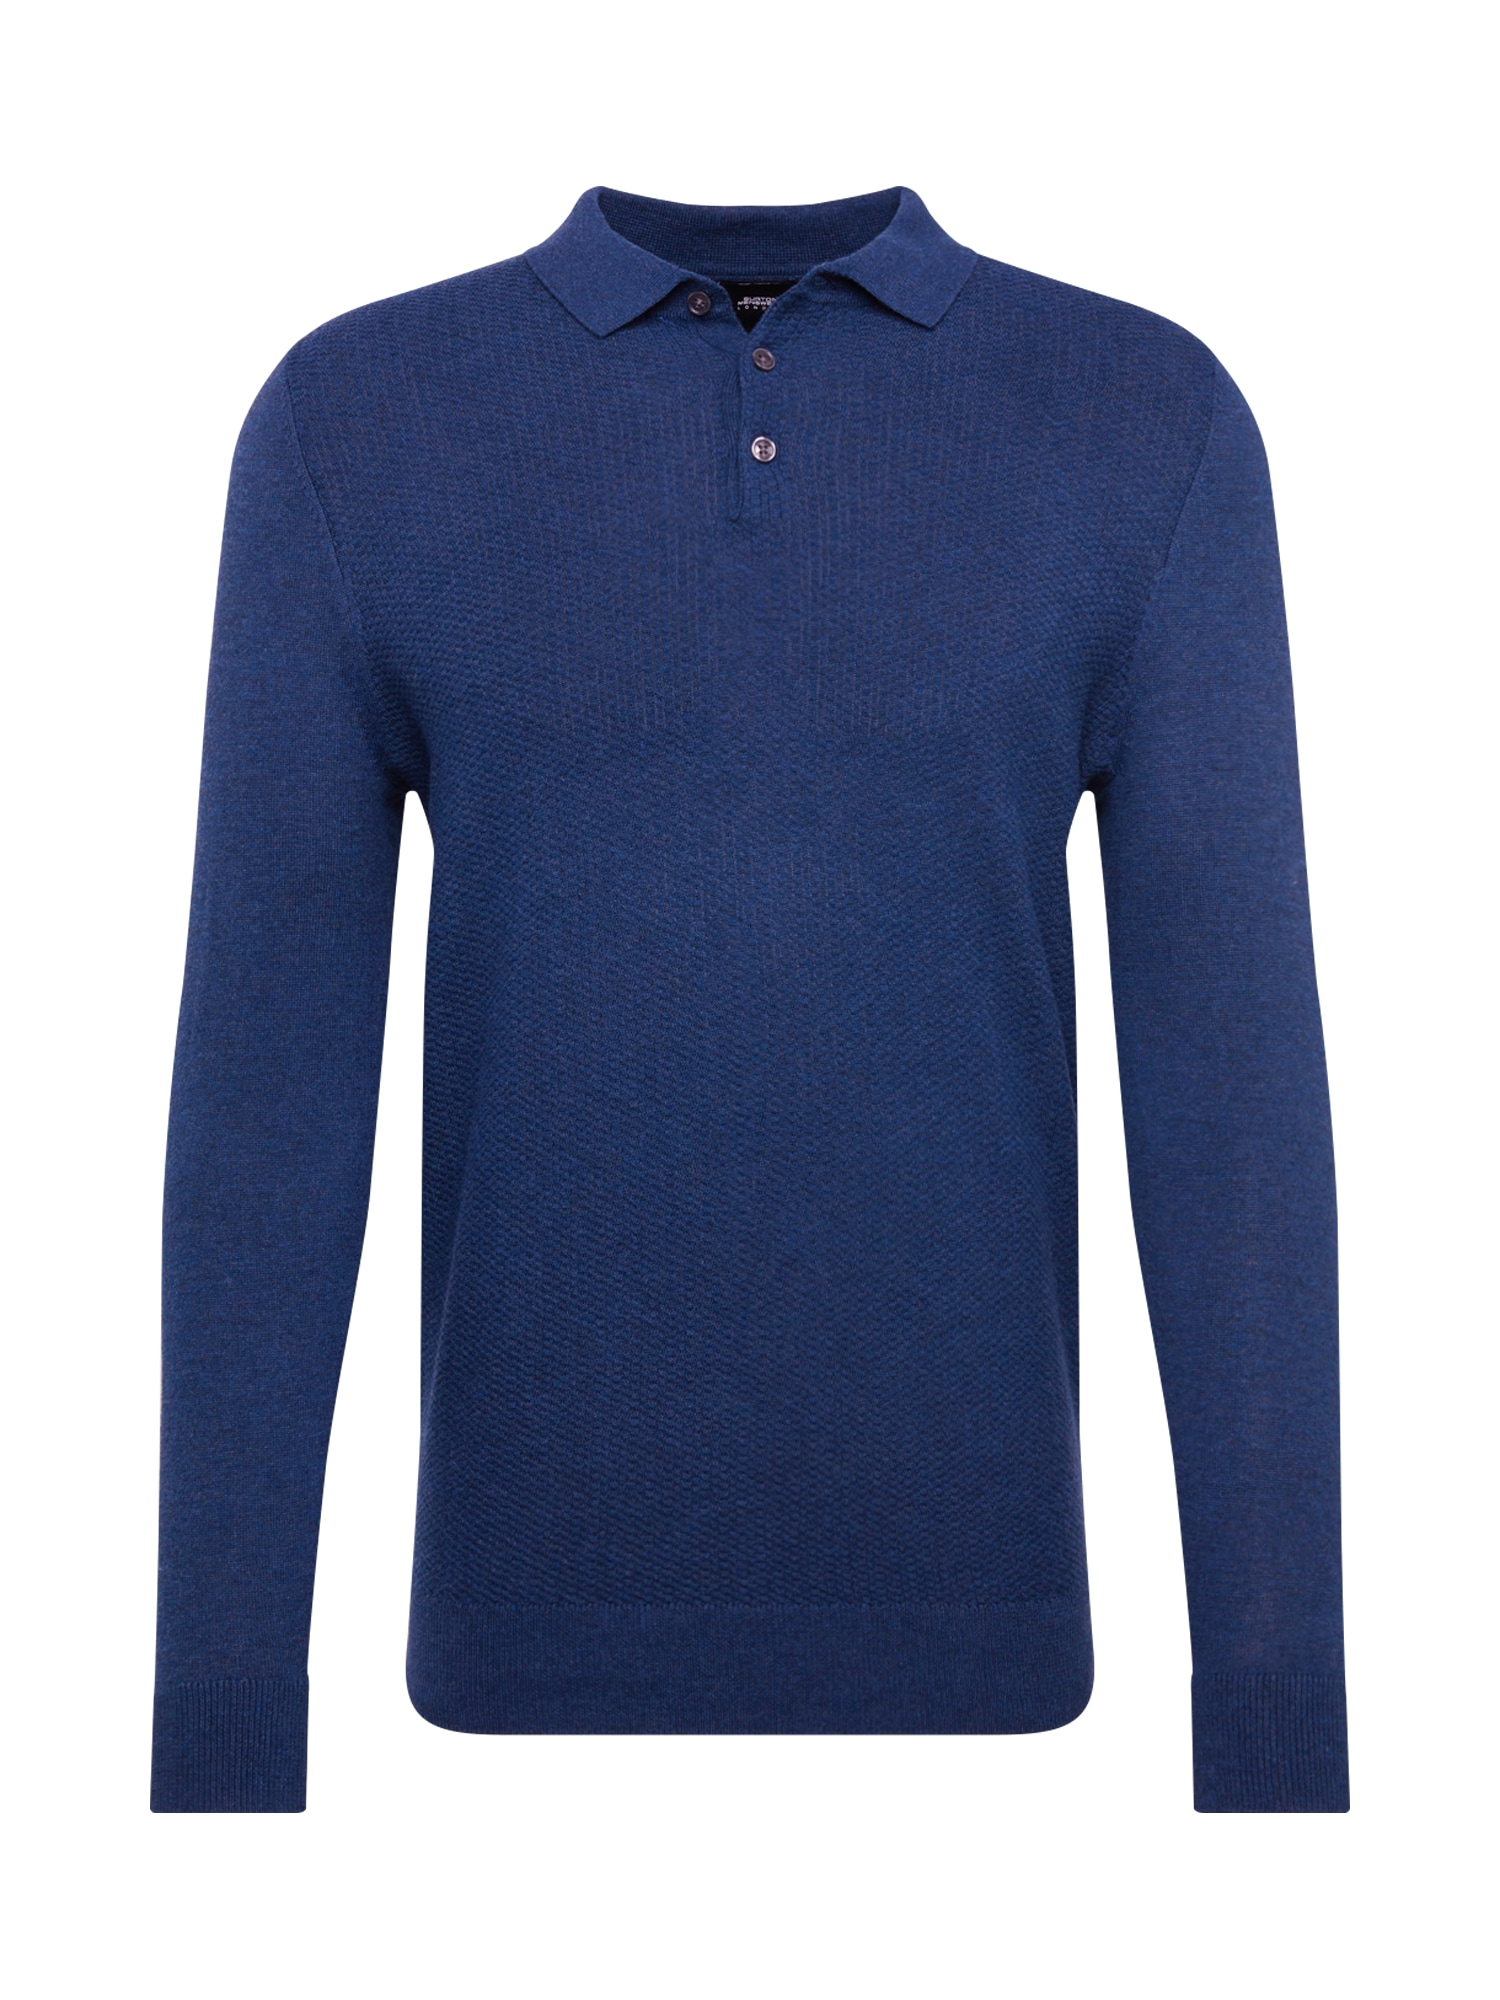 BURTON MENSWEAR LONDON Megztinis 'jordan textured polo rich blue' mėlyna